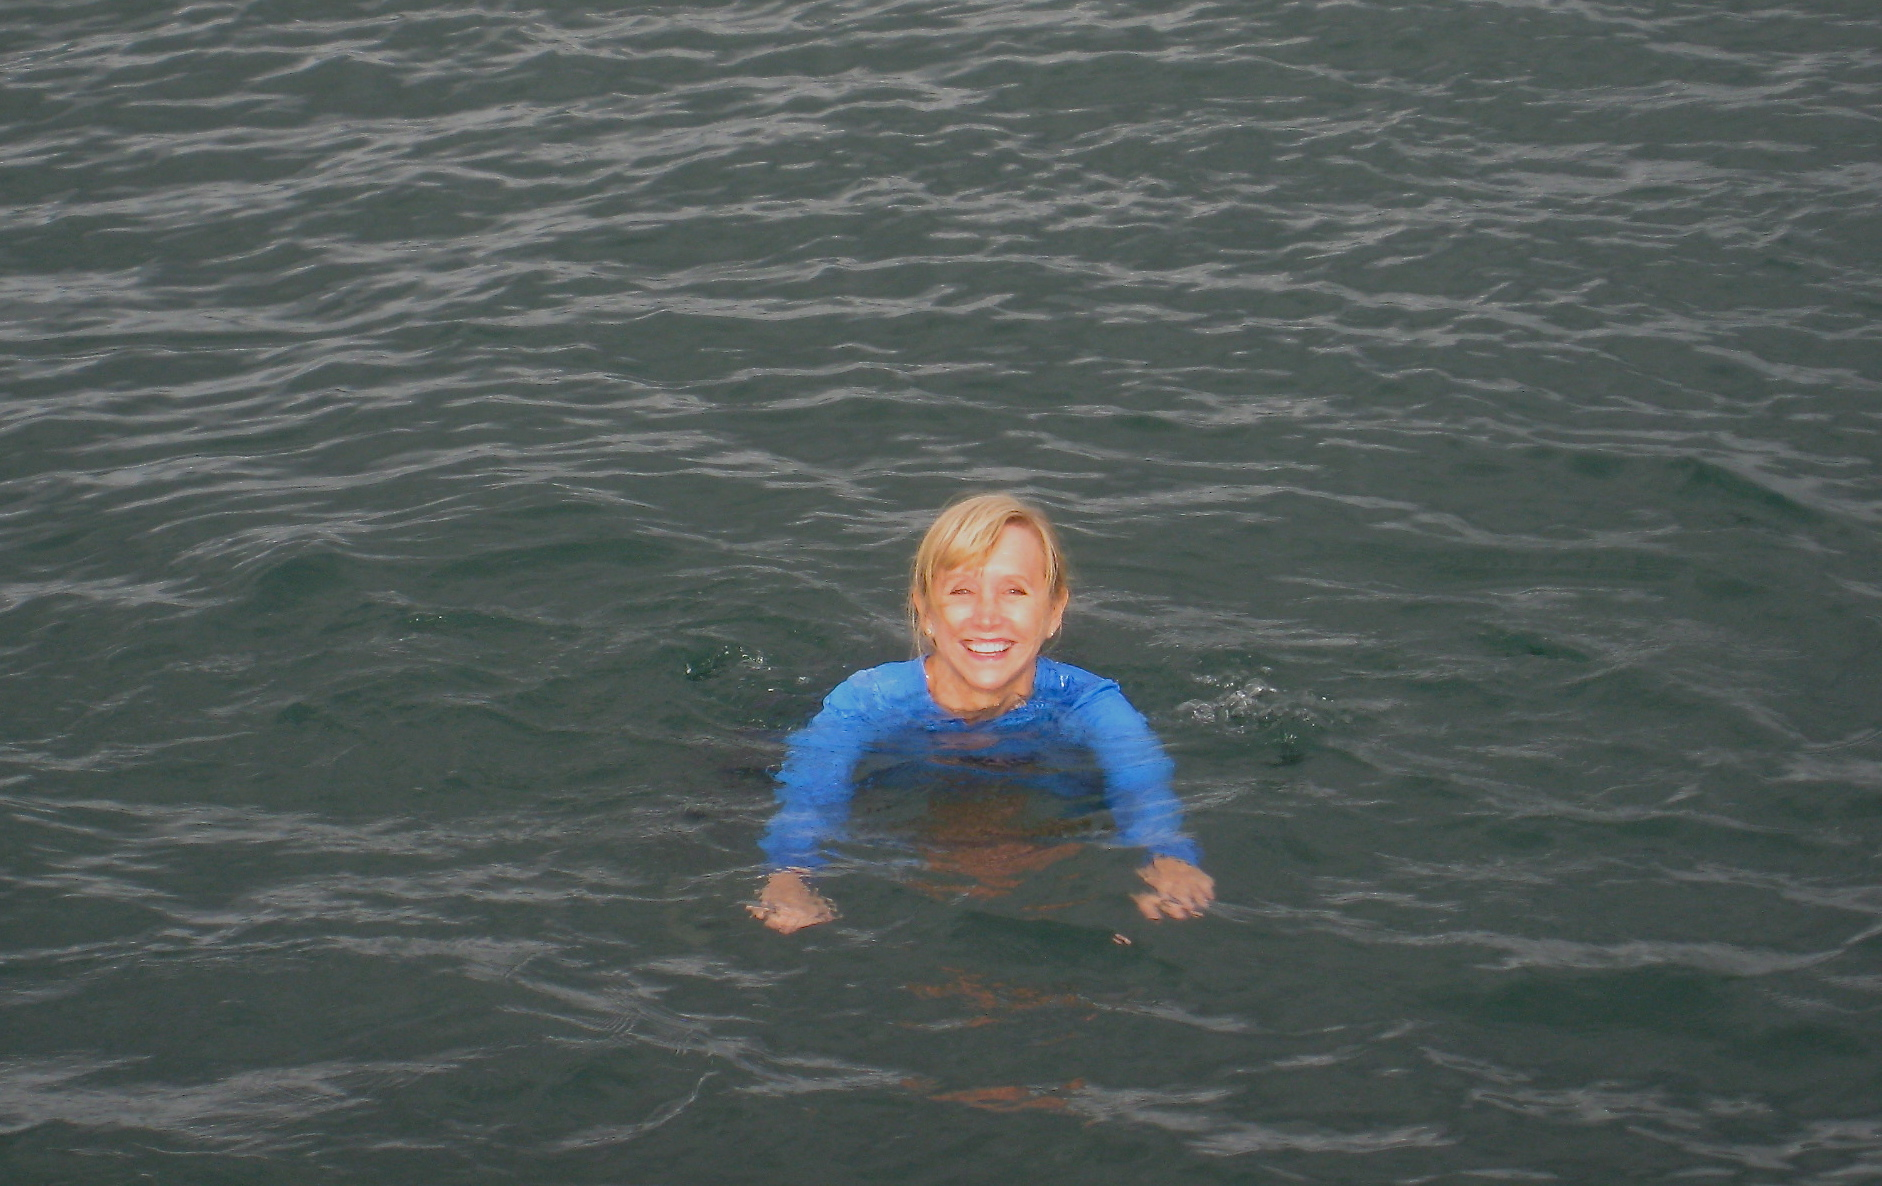 Blonde woman swimming at The Forty Foot Club in Ireland